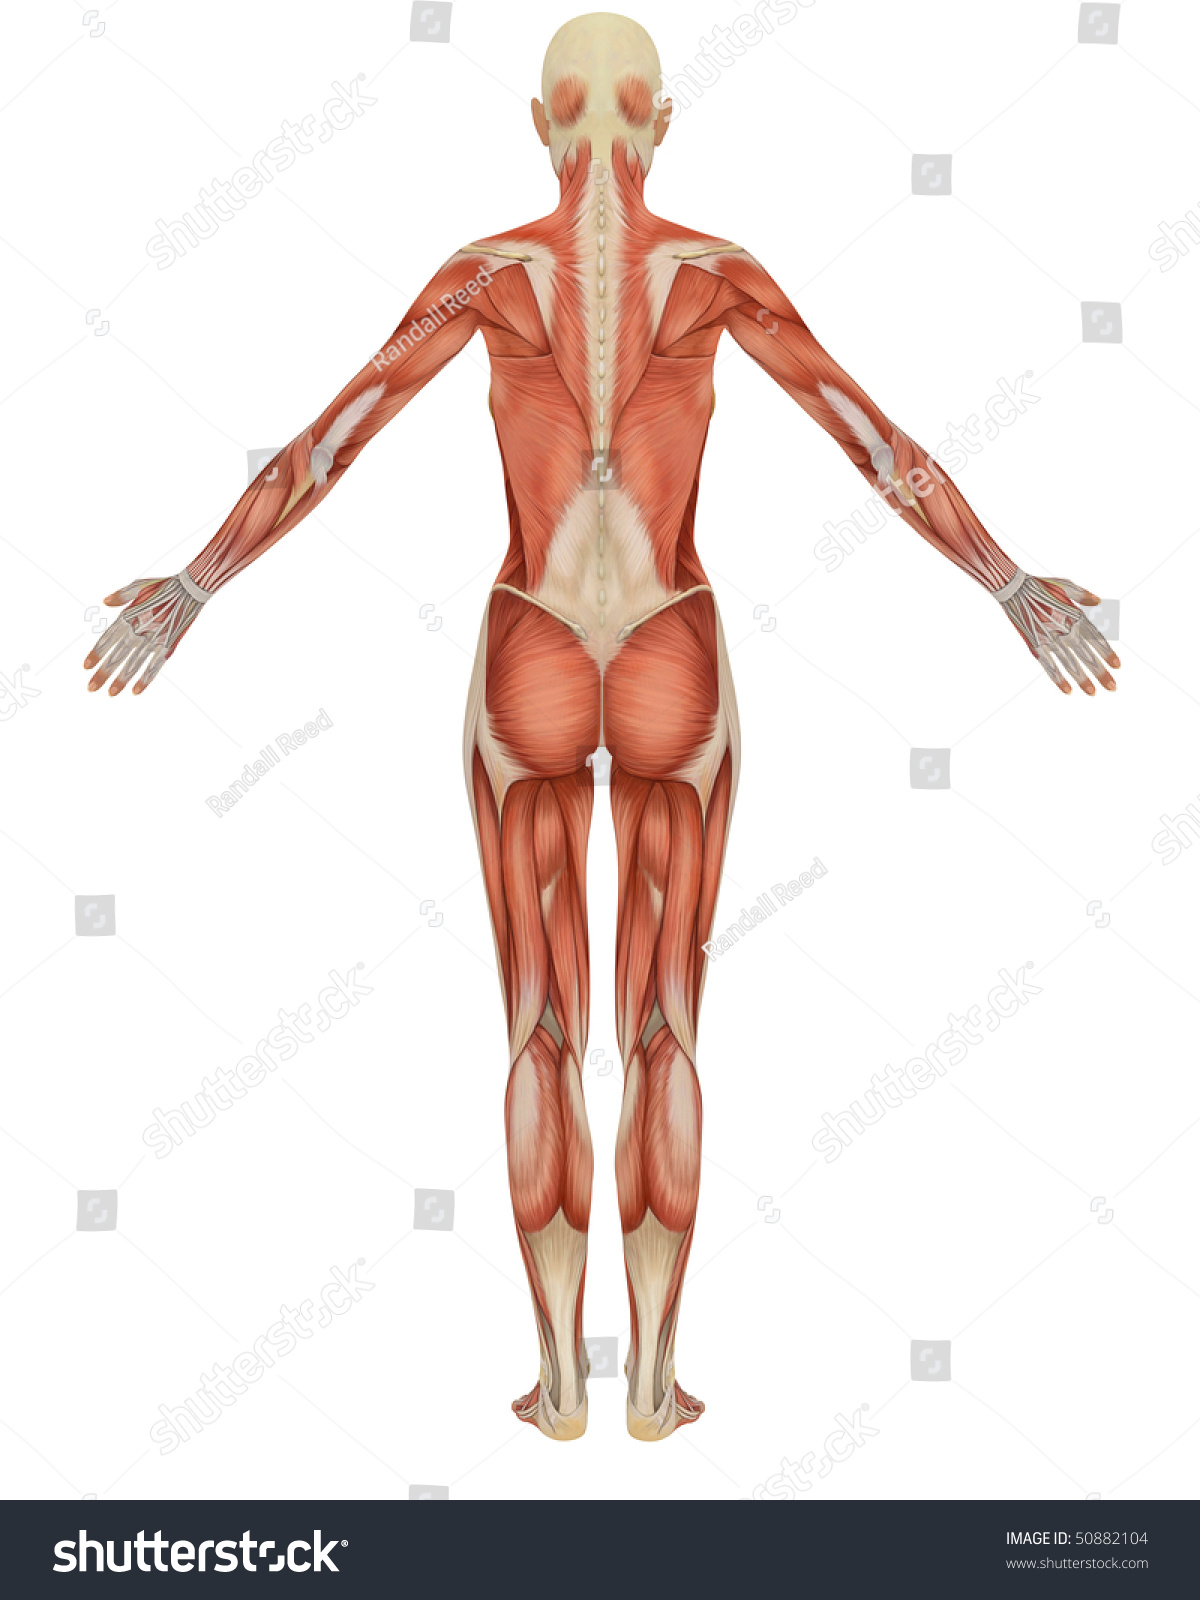 Royalty Free Stock Illustration Of Rear View Female Muscular Anatomy